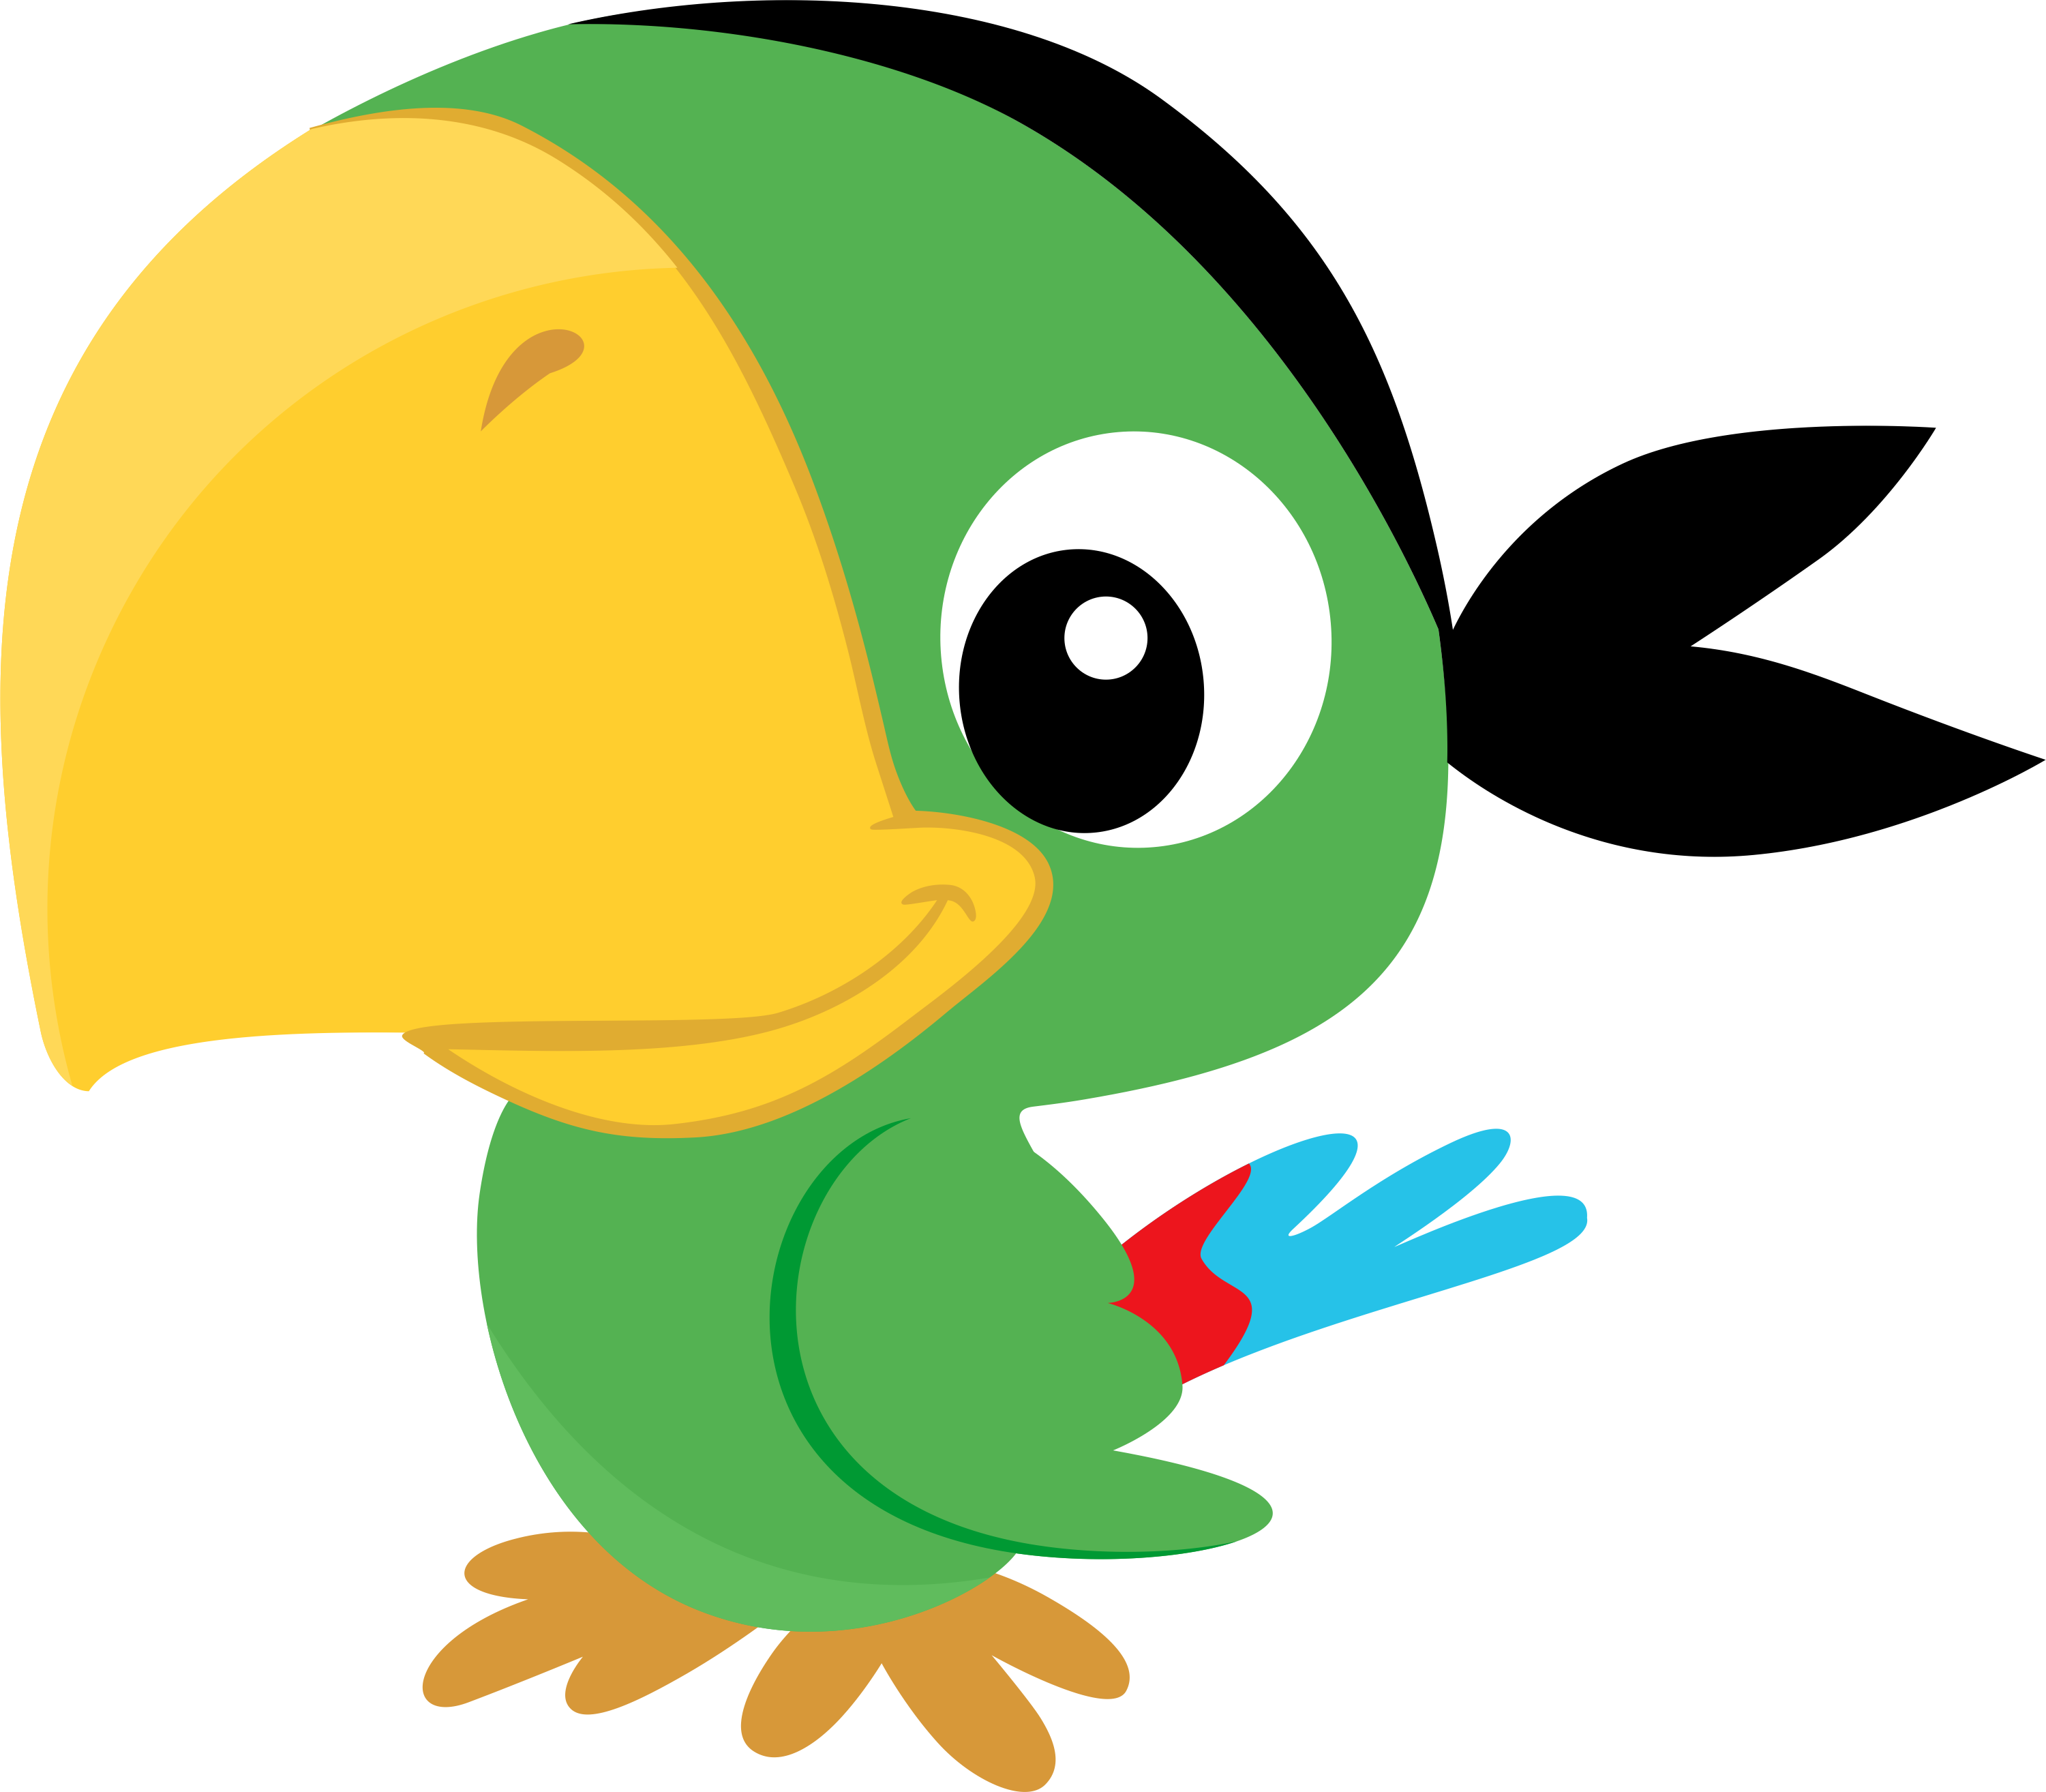 Inpgzazltq2zn Png 3001 2628 Pirate Parrot Animal Clipart Pirates